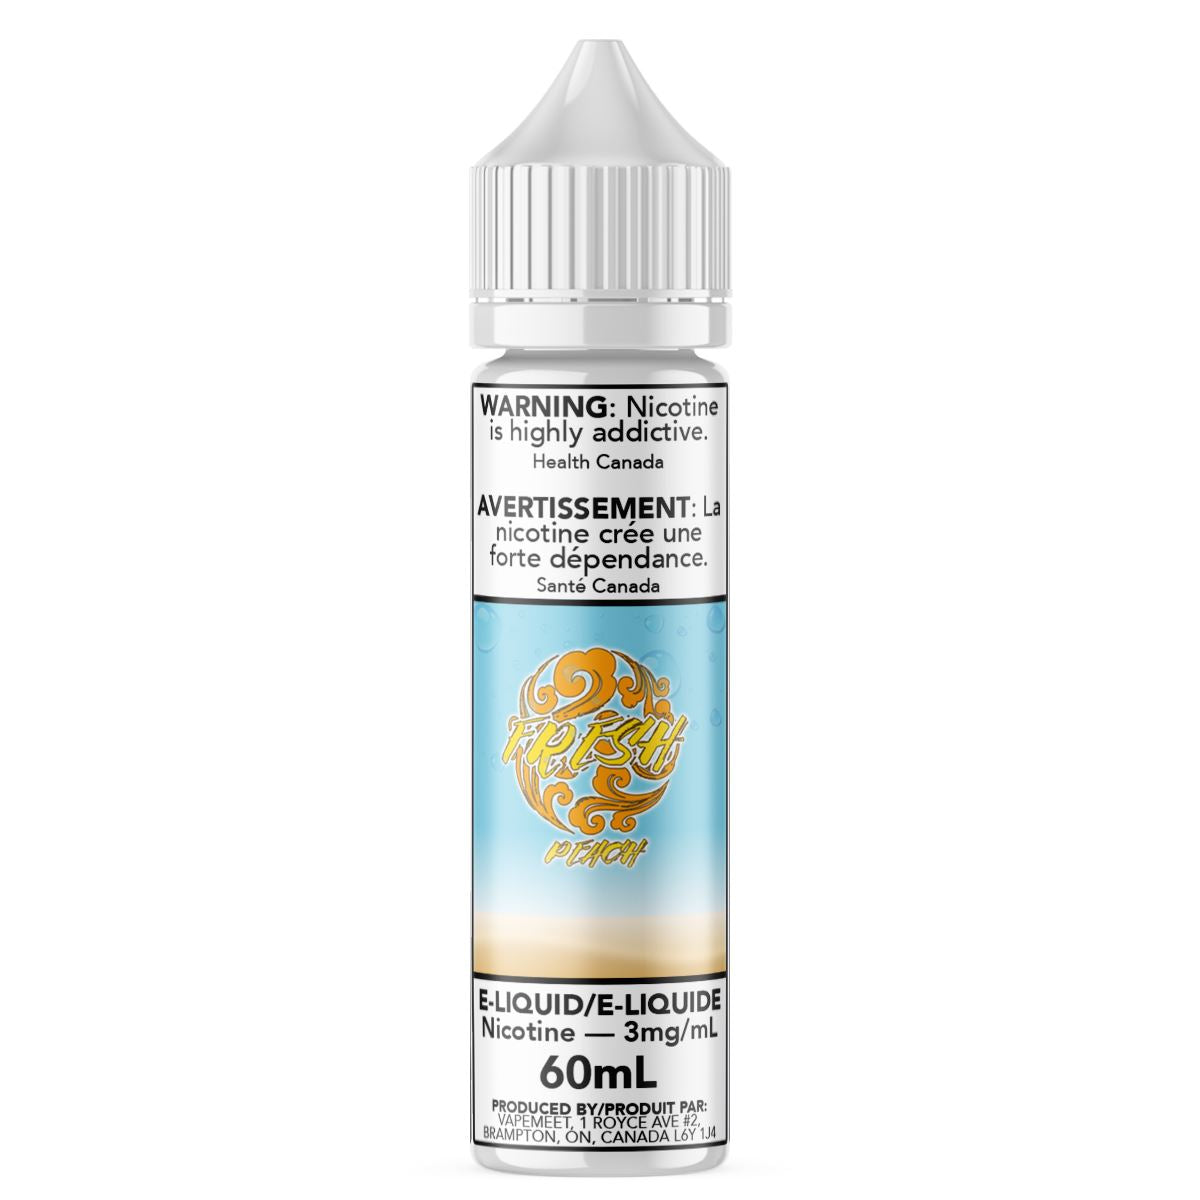 Fresh - Peach E-Liquid Fresh 60mL 0 mg/mL